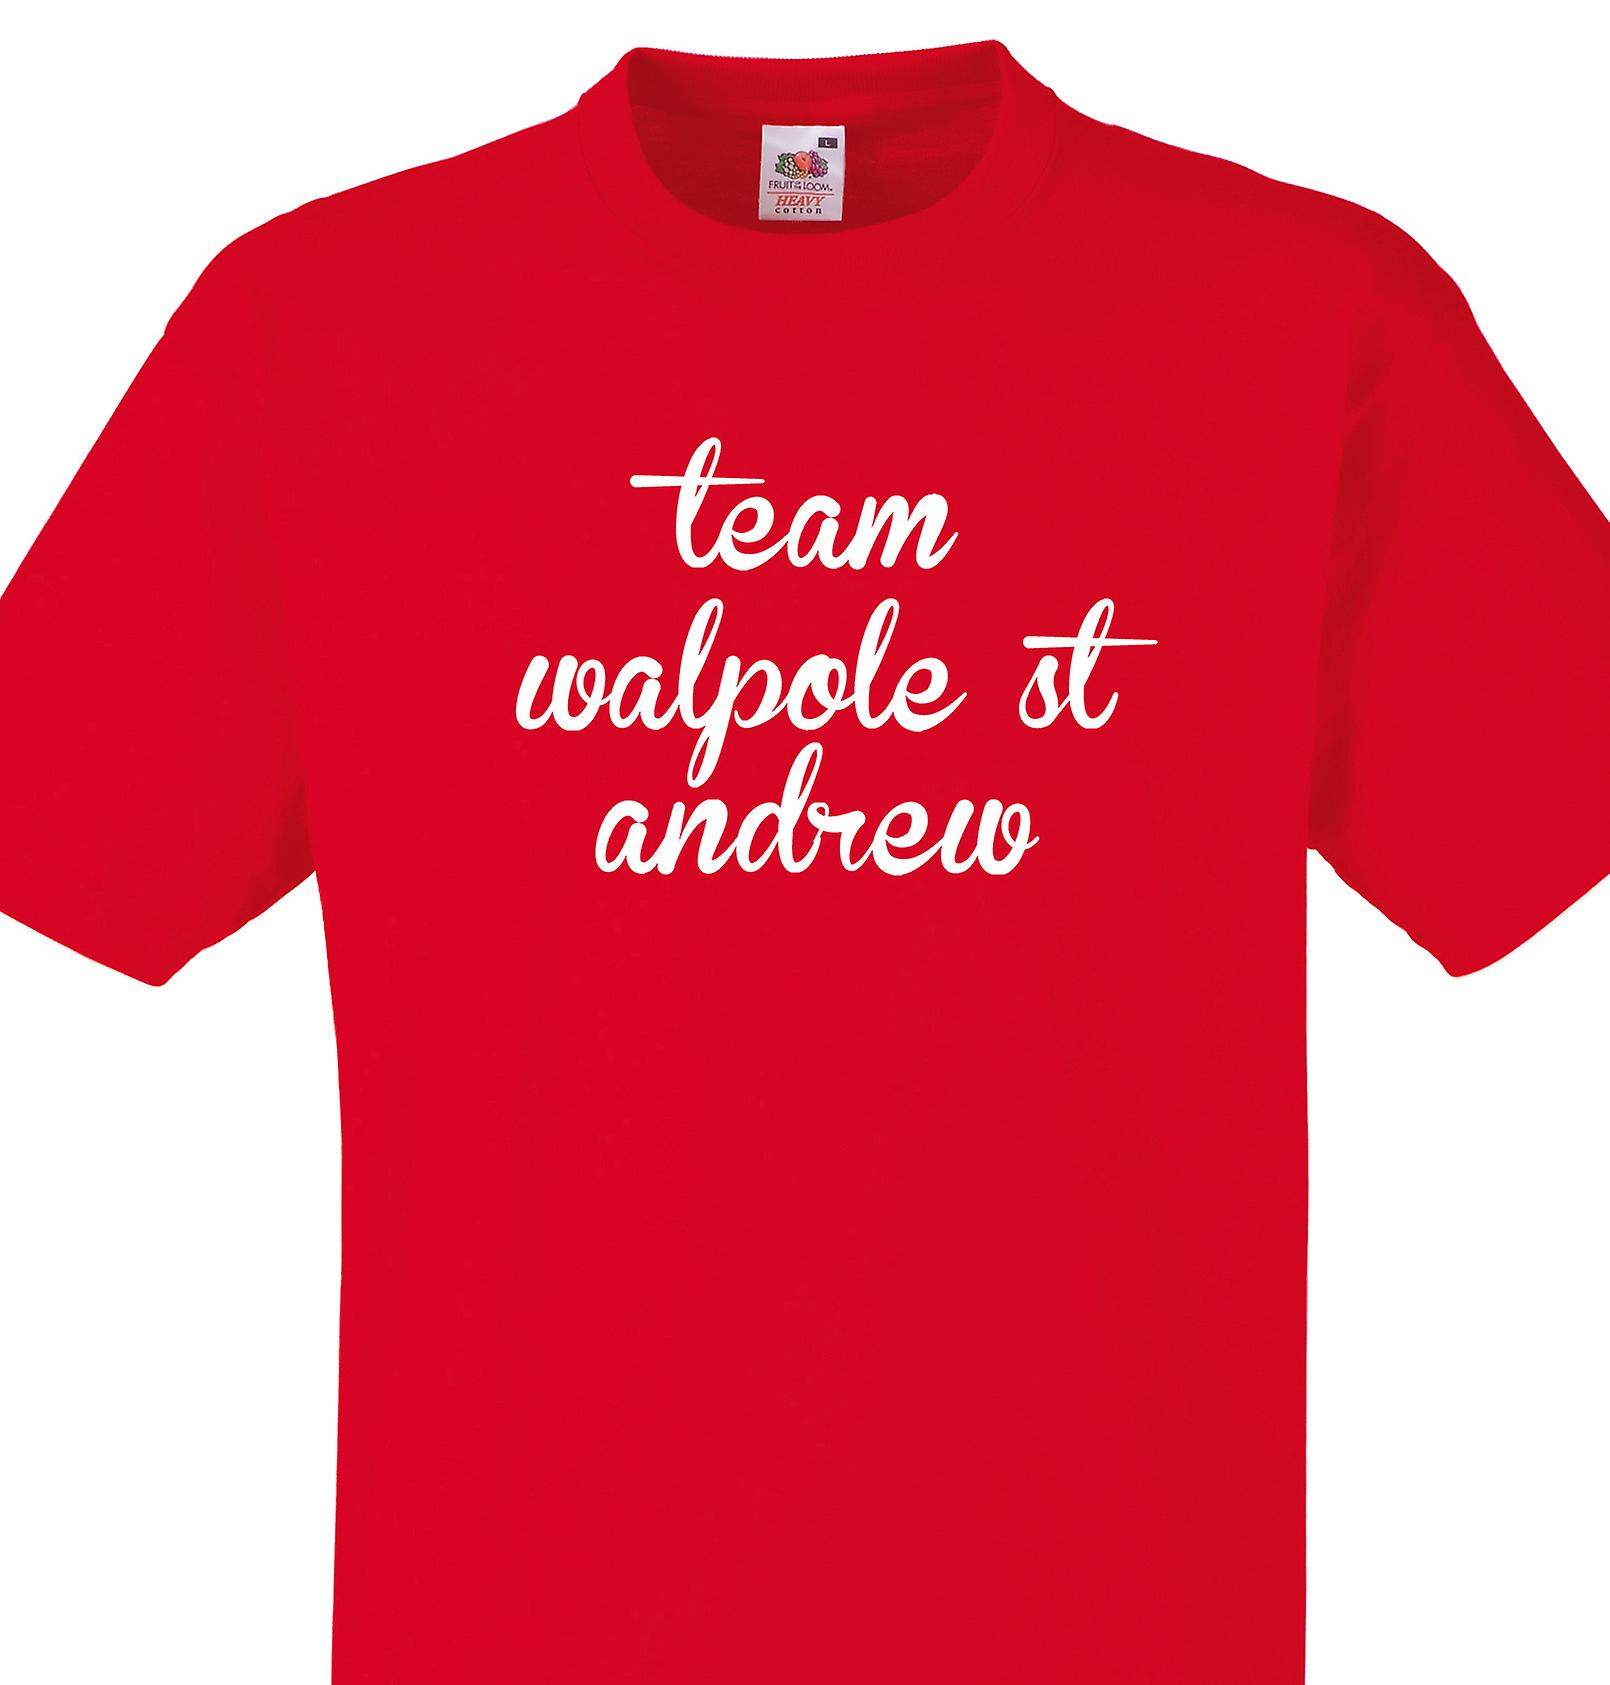 Team Walpole st andrew Red T shirt